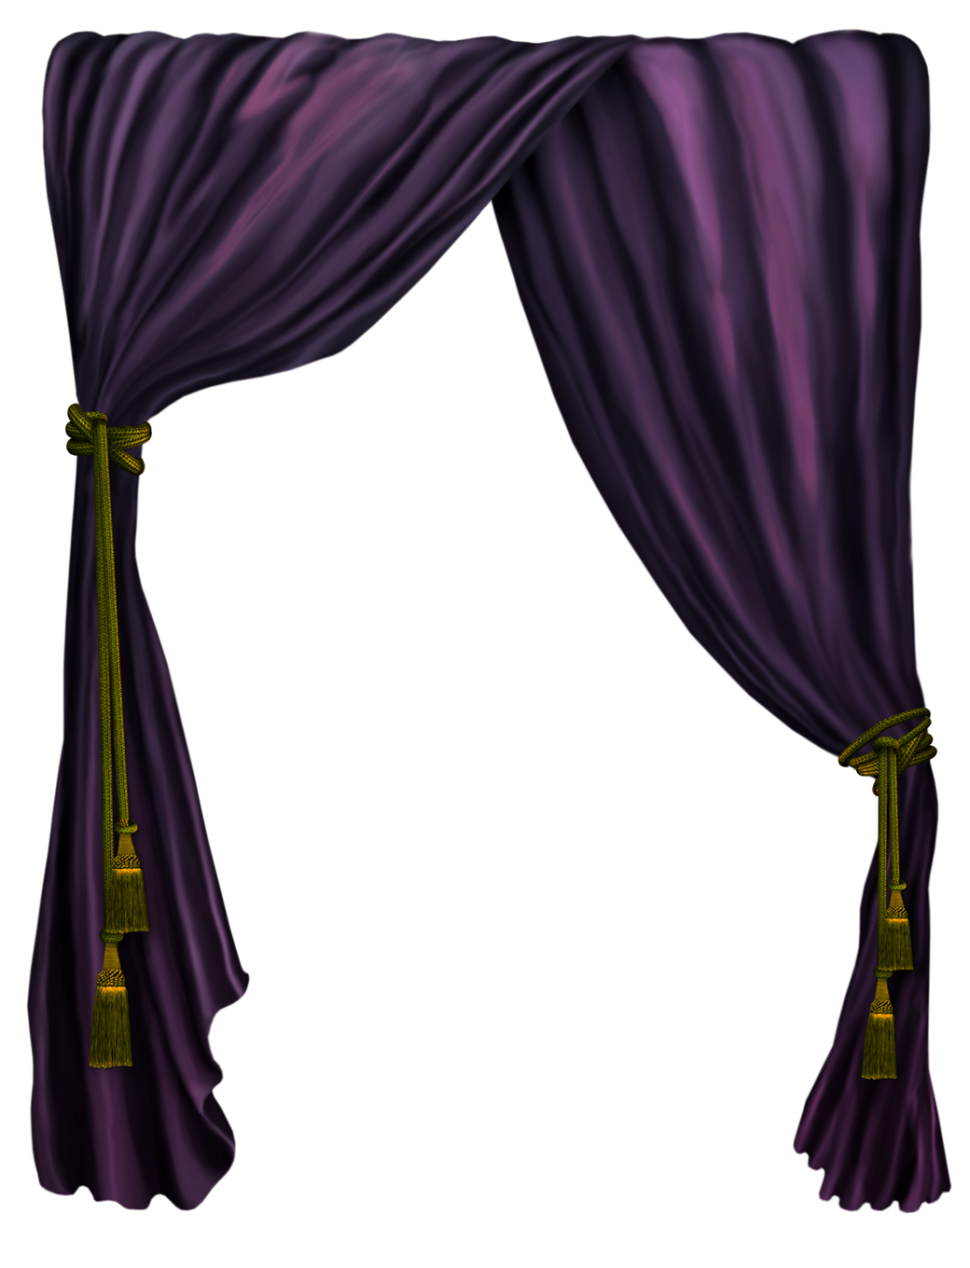 Curtains clipart curtain design. Literarywondrous purple swag image